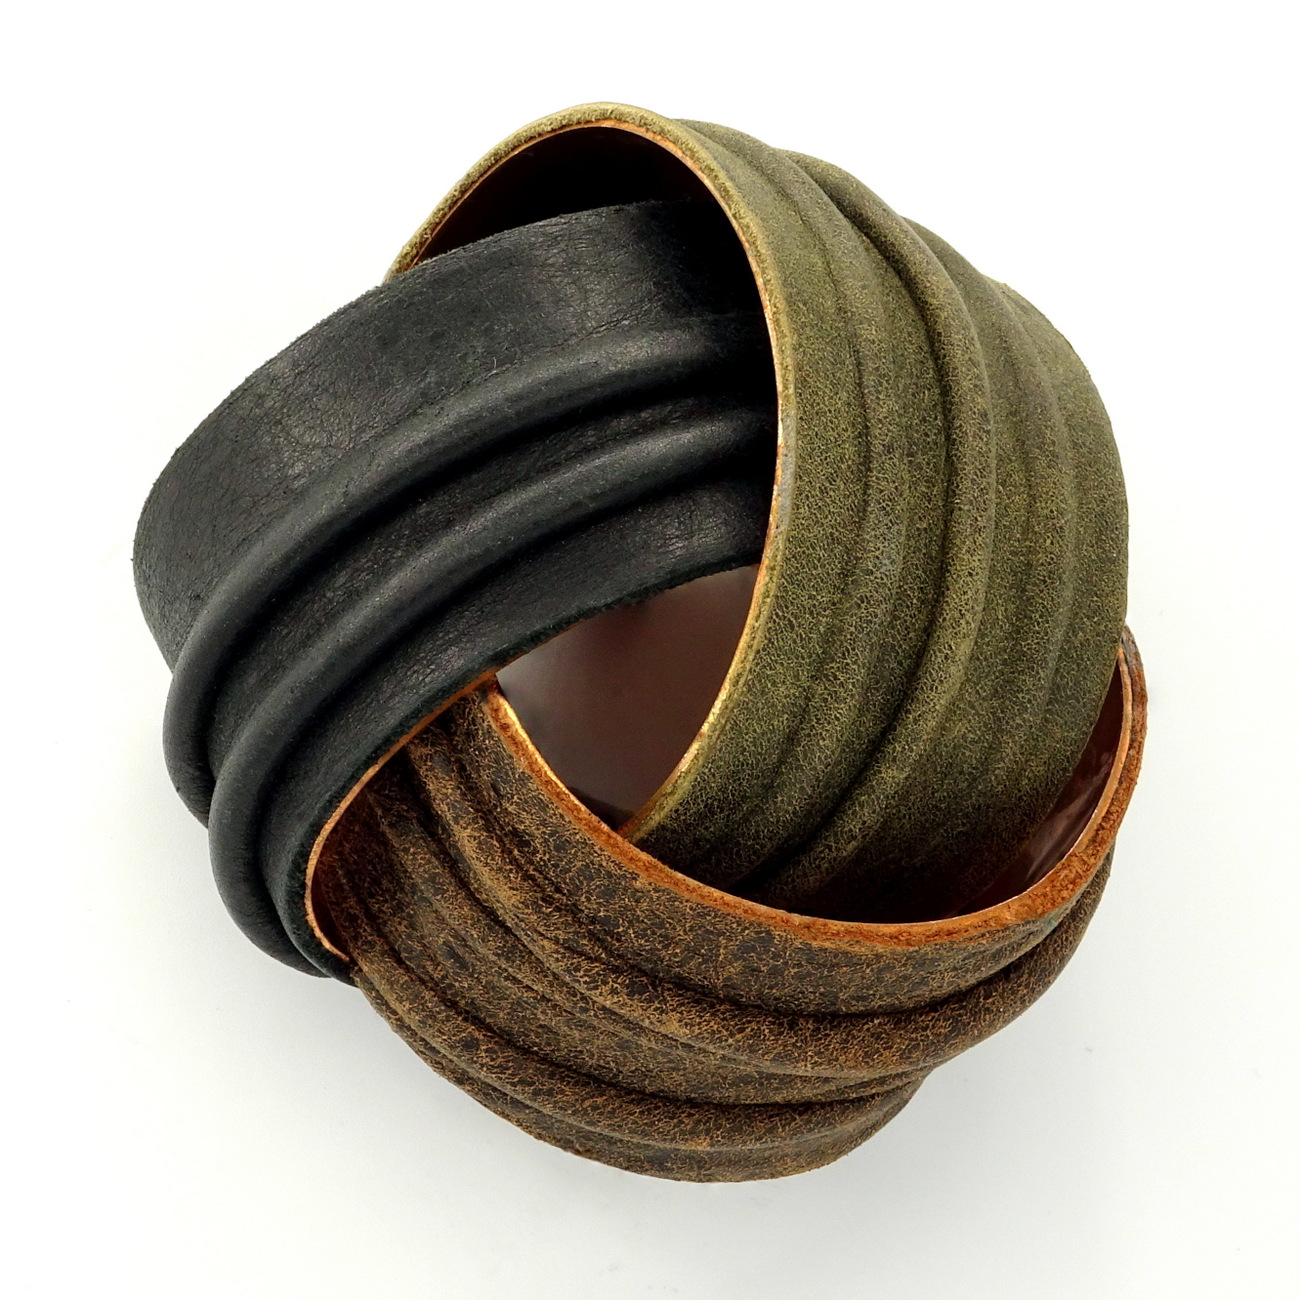 1-Hancrafted Leather Cuff Bracelets, LaPlace Leather, Memphis TN.JPG